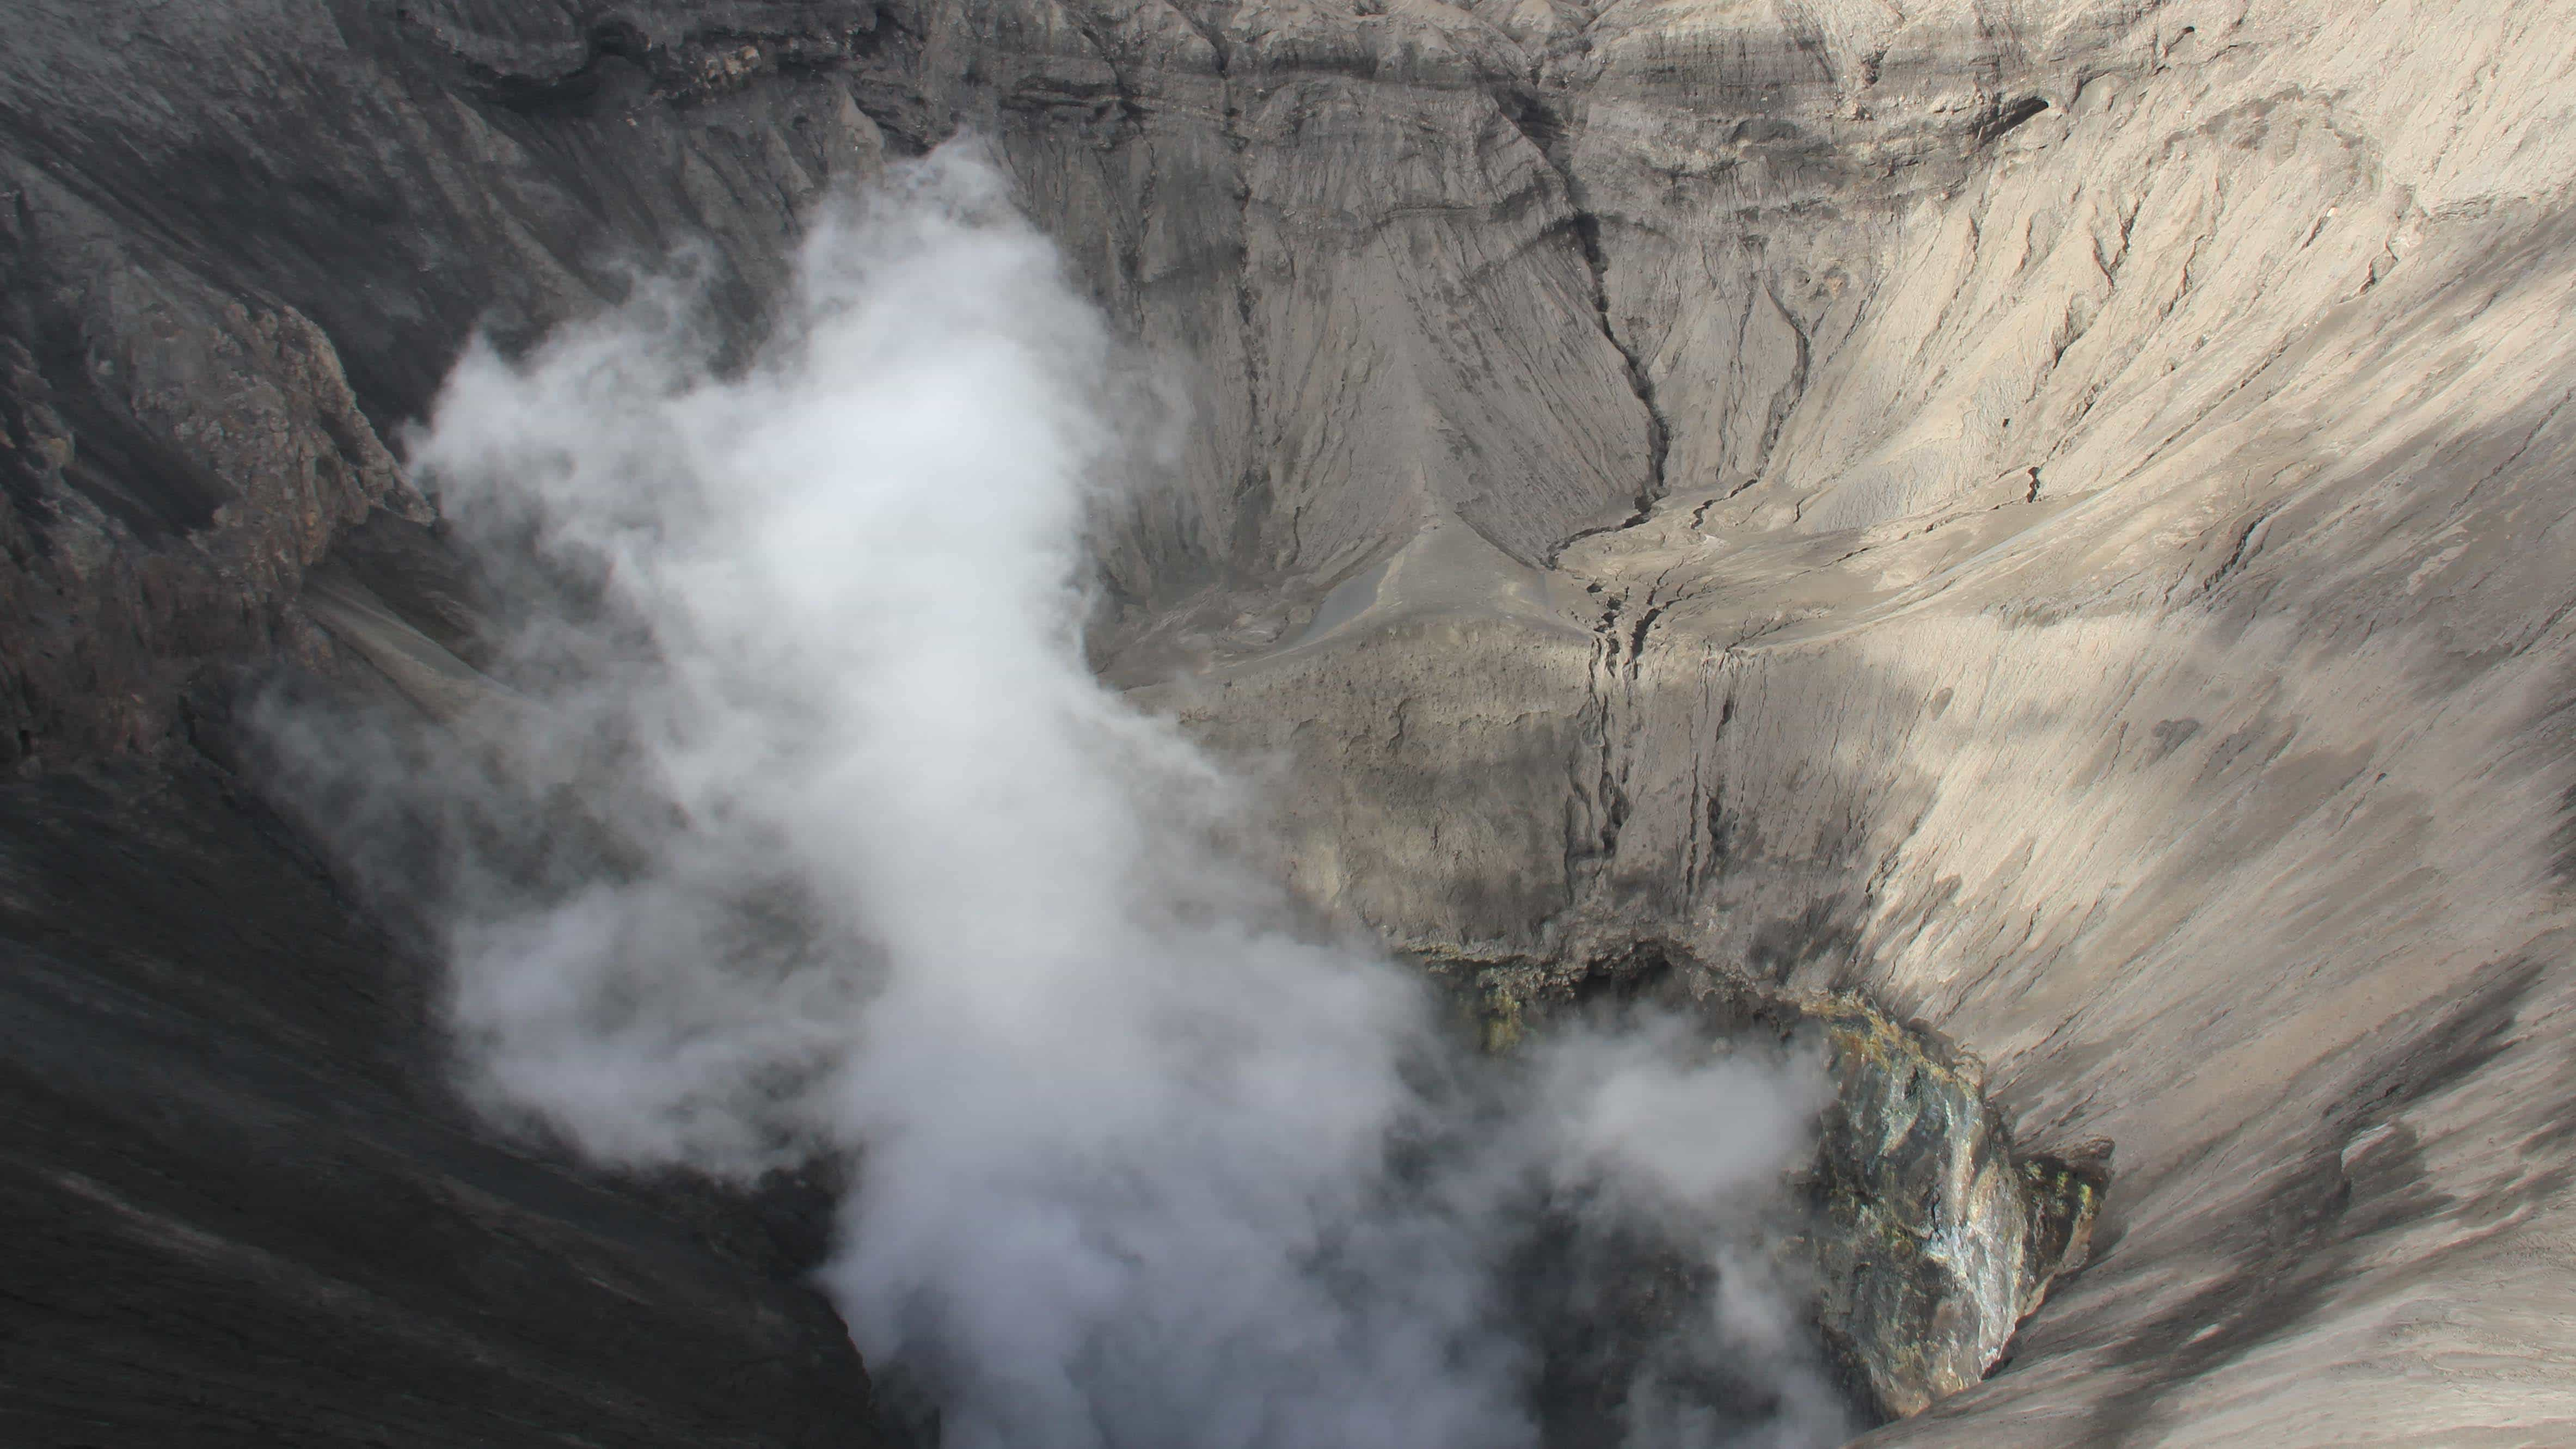 Mount Bromo crater seen from the top